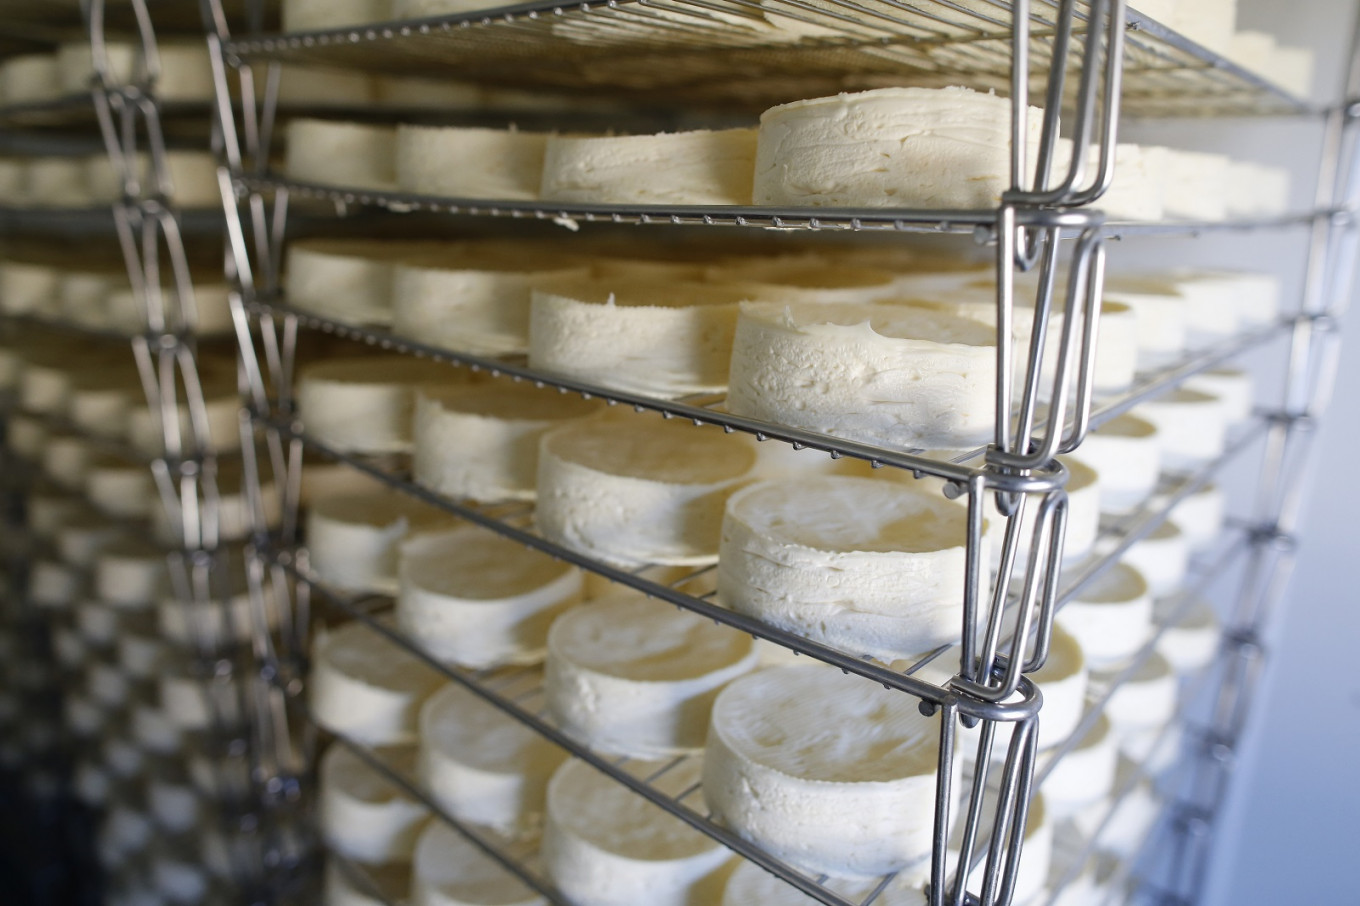 Cheese fans raise a stink over plans for pasteurized camembert